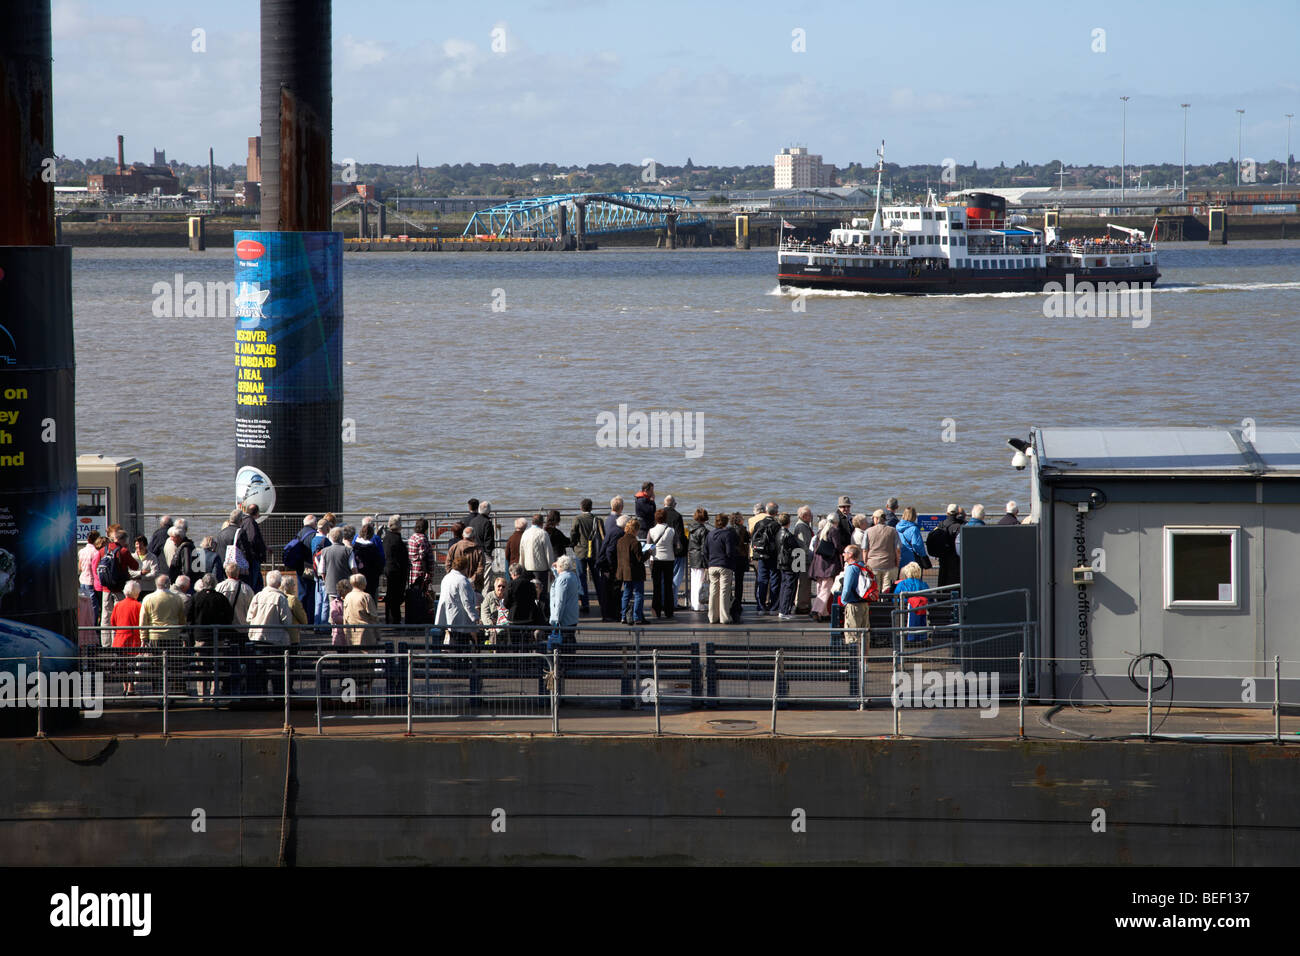 tourists and commuters queue up at the pier head floating ferry terminal waiting for the mersey ferry on the river - Stock Image